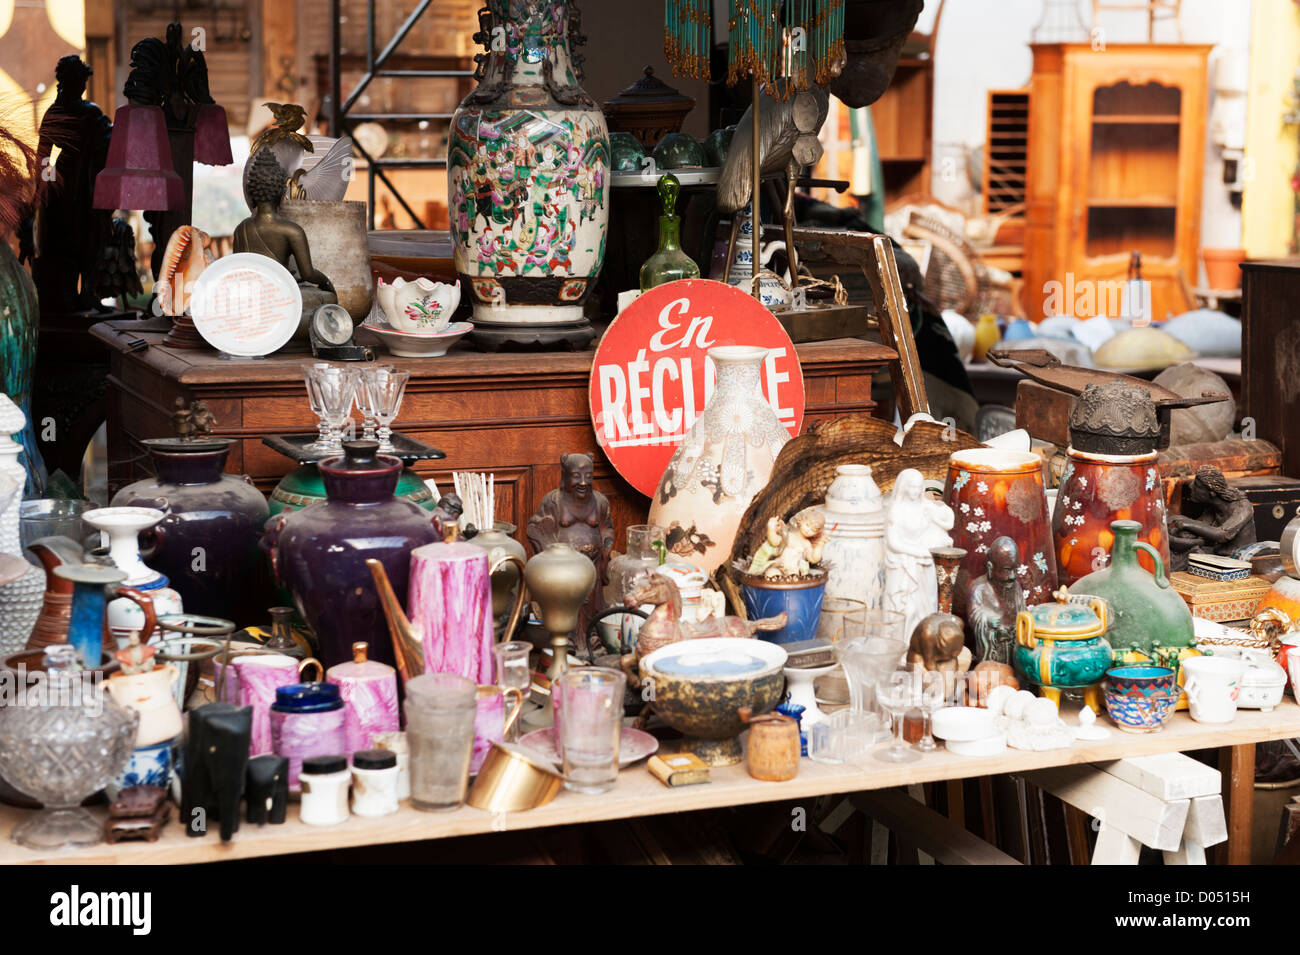 march aux puces flea market at st ouen near to clignancourt in the stock photo 51741805 alamy. Black Bedroom Furniture Sets. Home Design Ideas